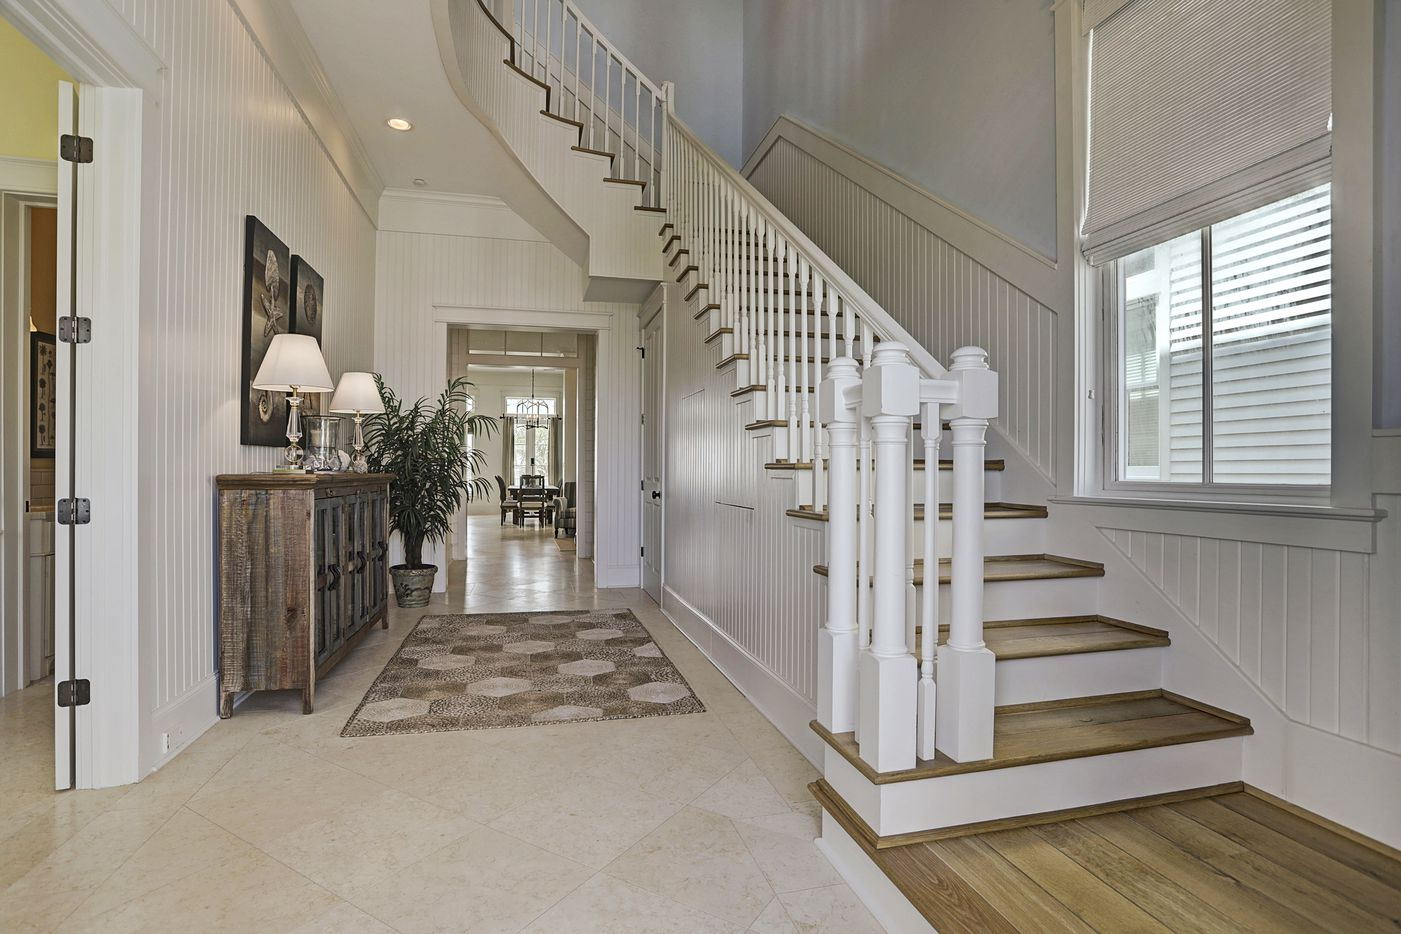 A look at 2633 East Seaside Drive in Galveston, Texas.